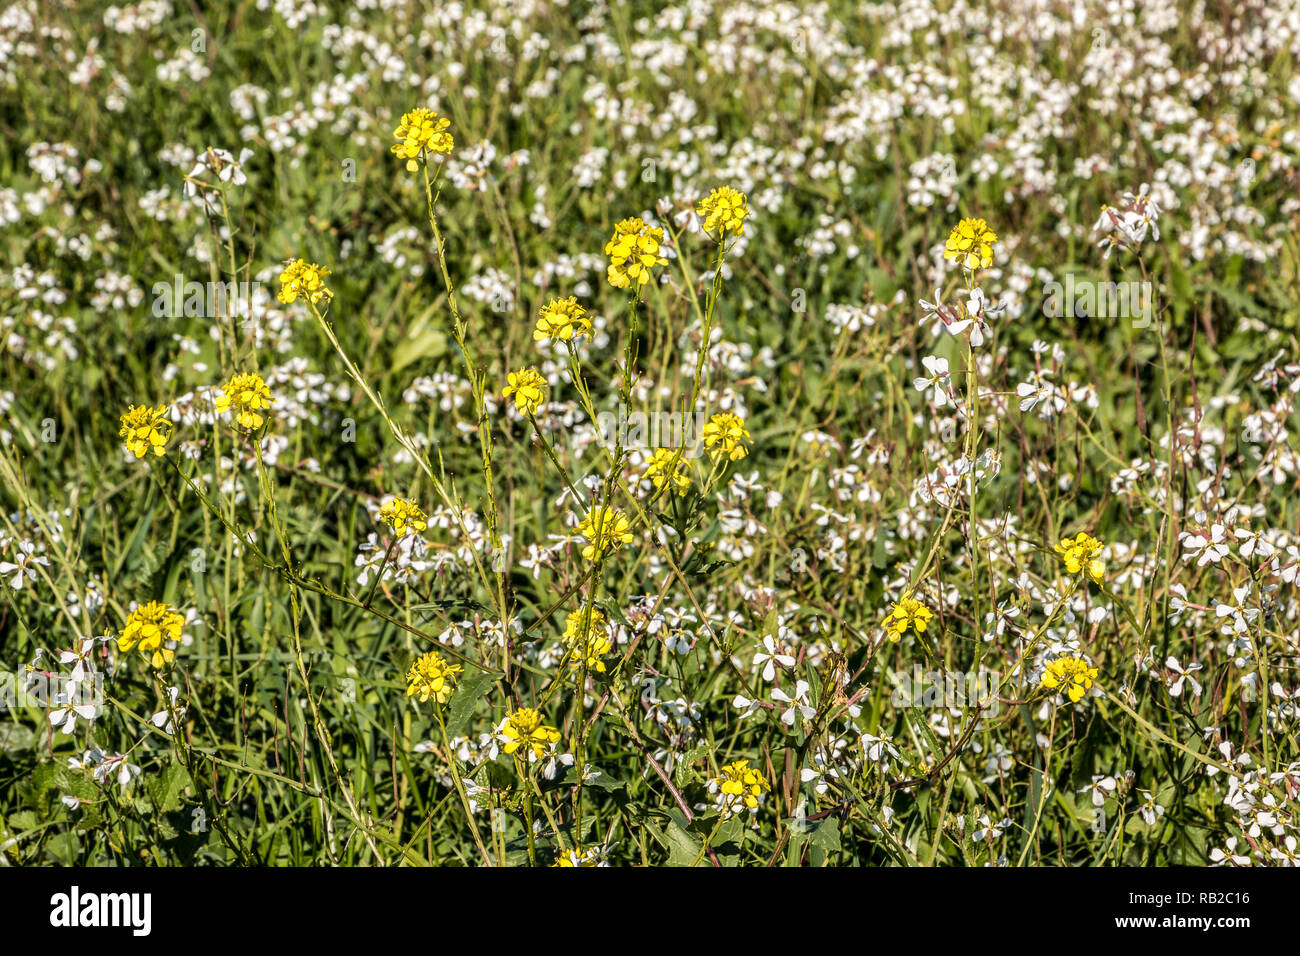 Green and colorful flower field with yellow and white flowers - Stock Image